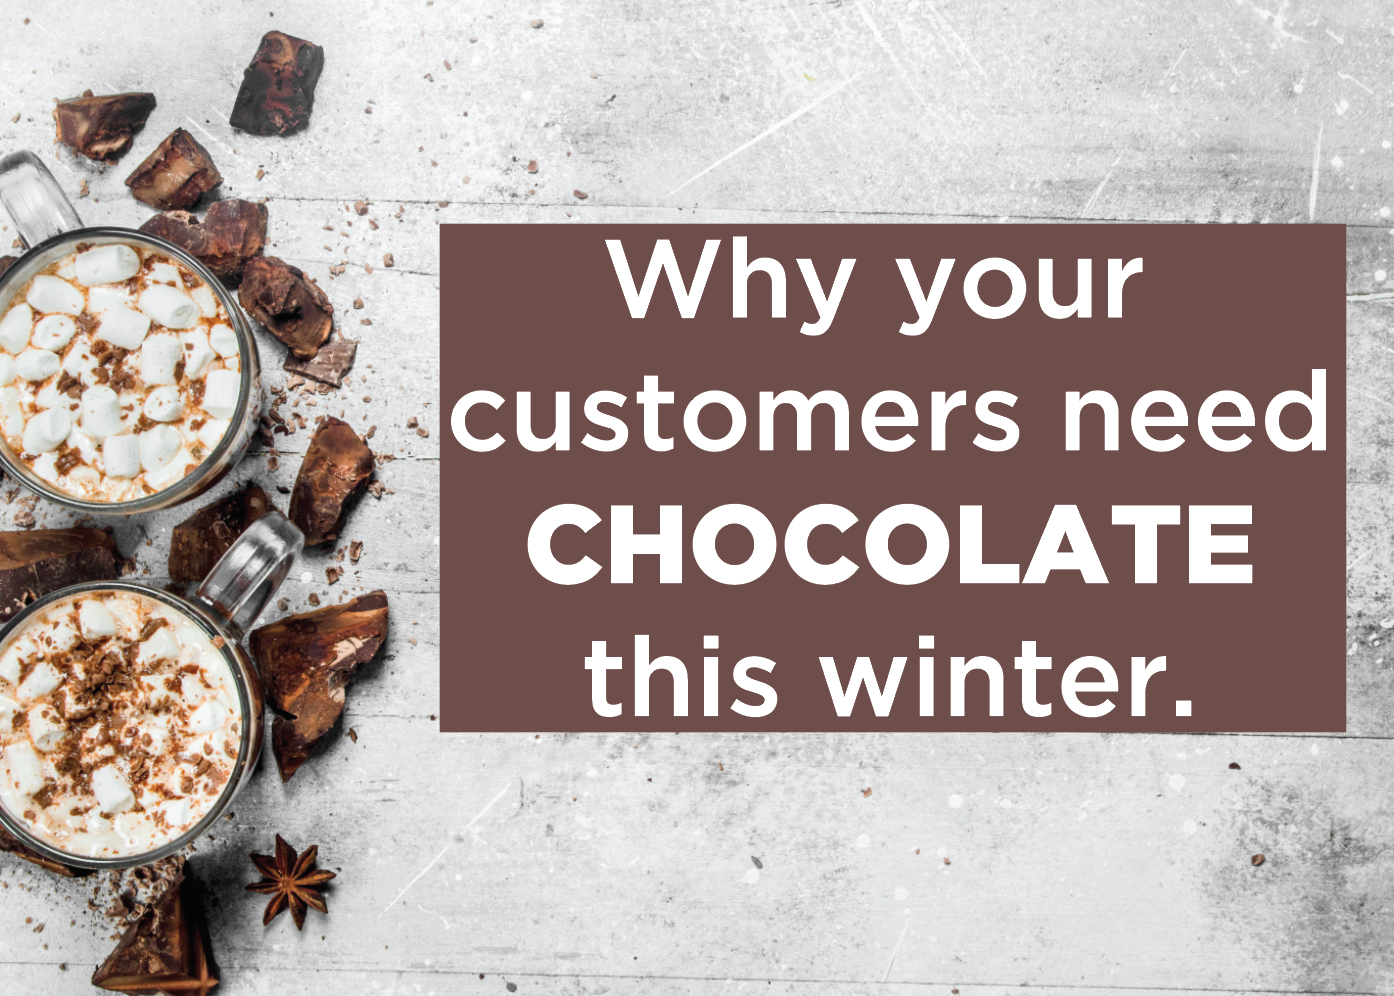 Why Your Customers Need Chocolate This Winter